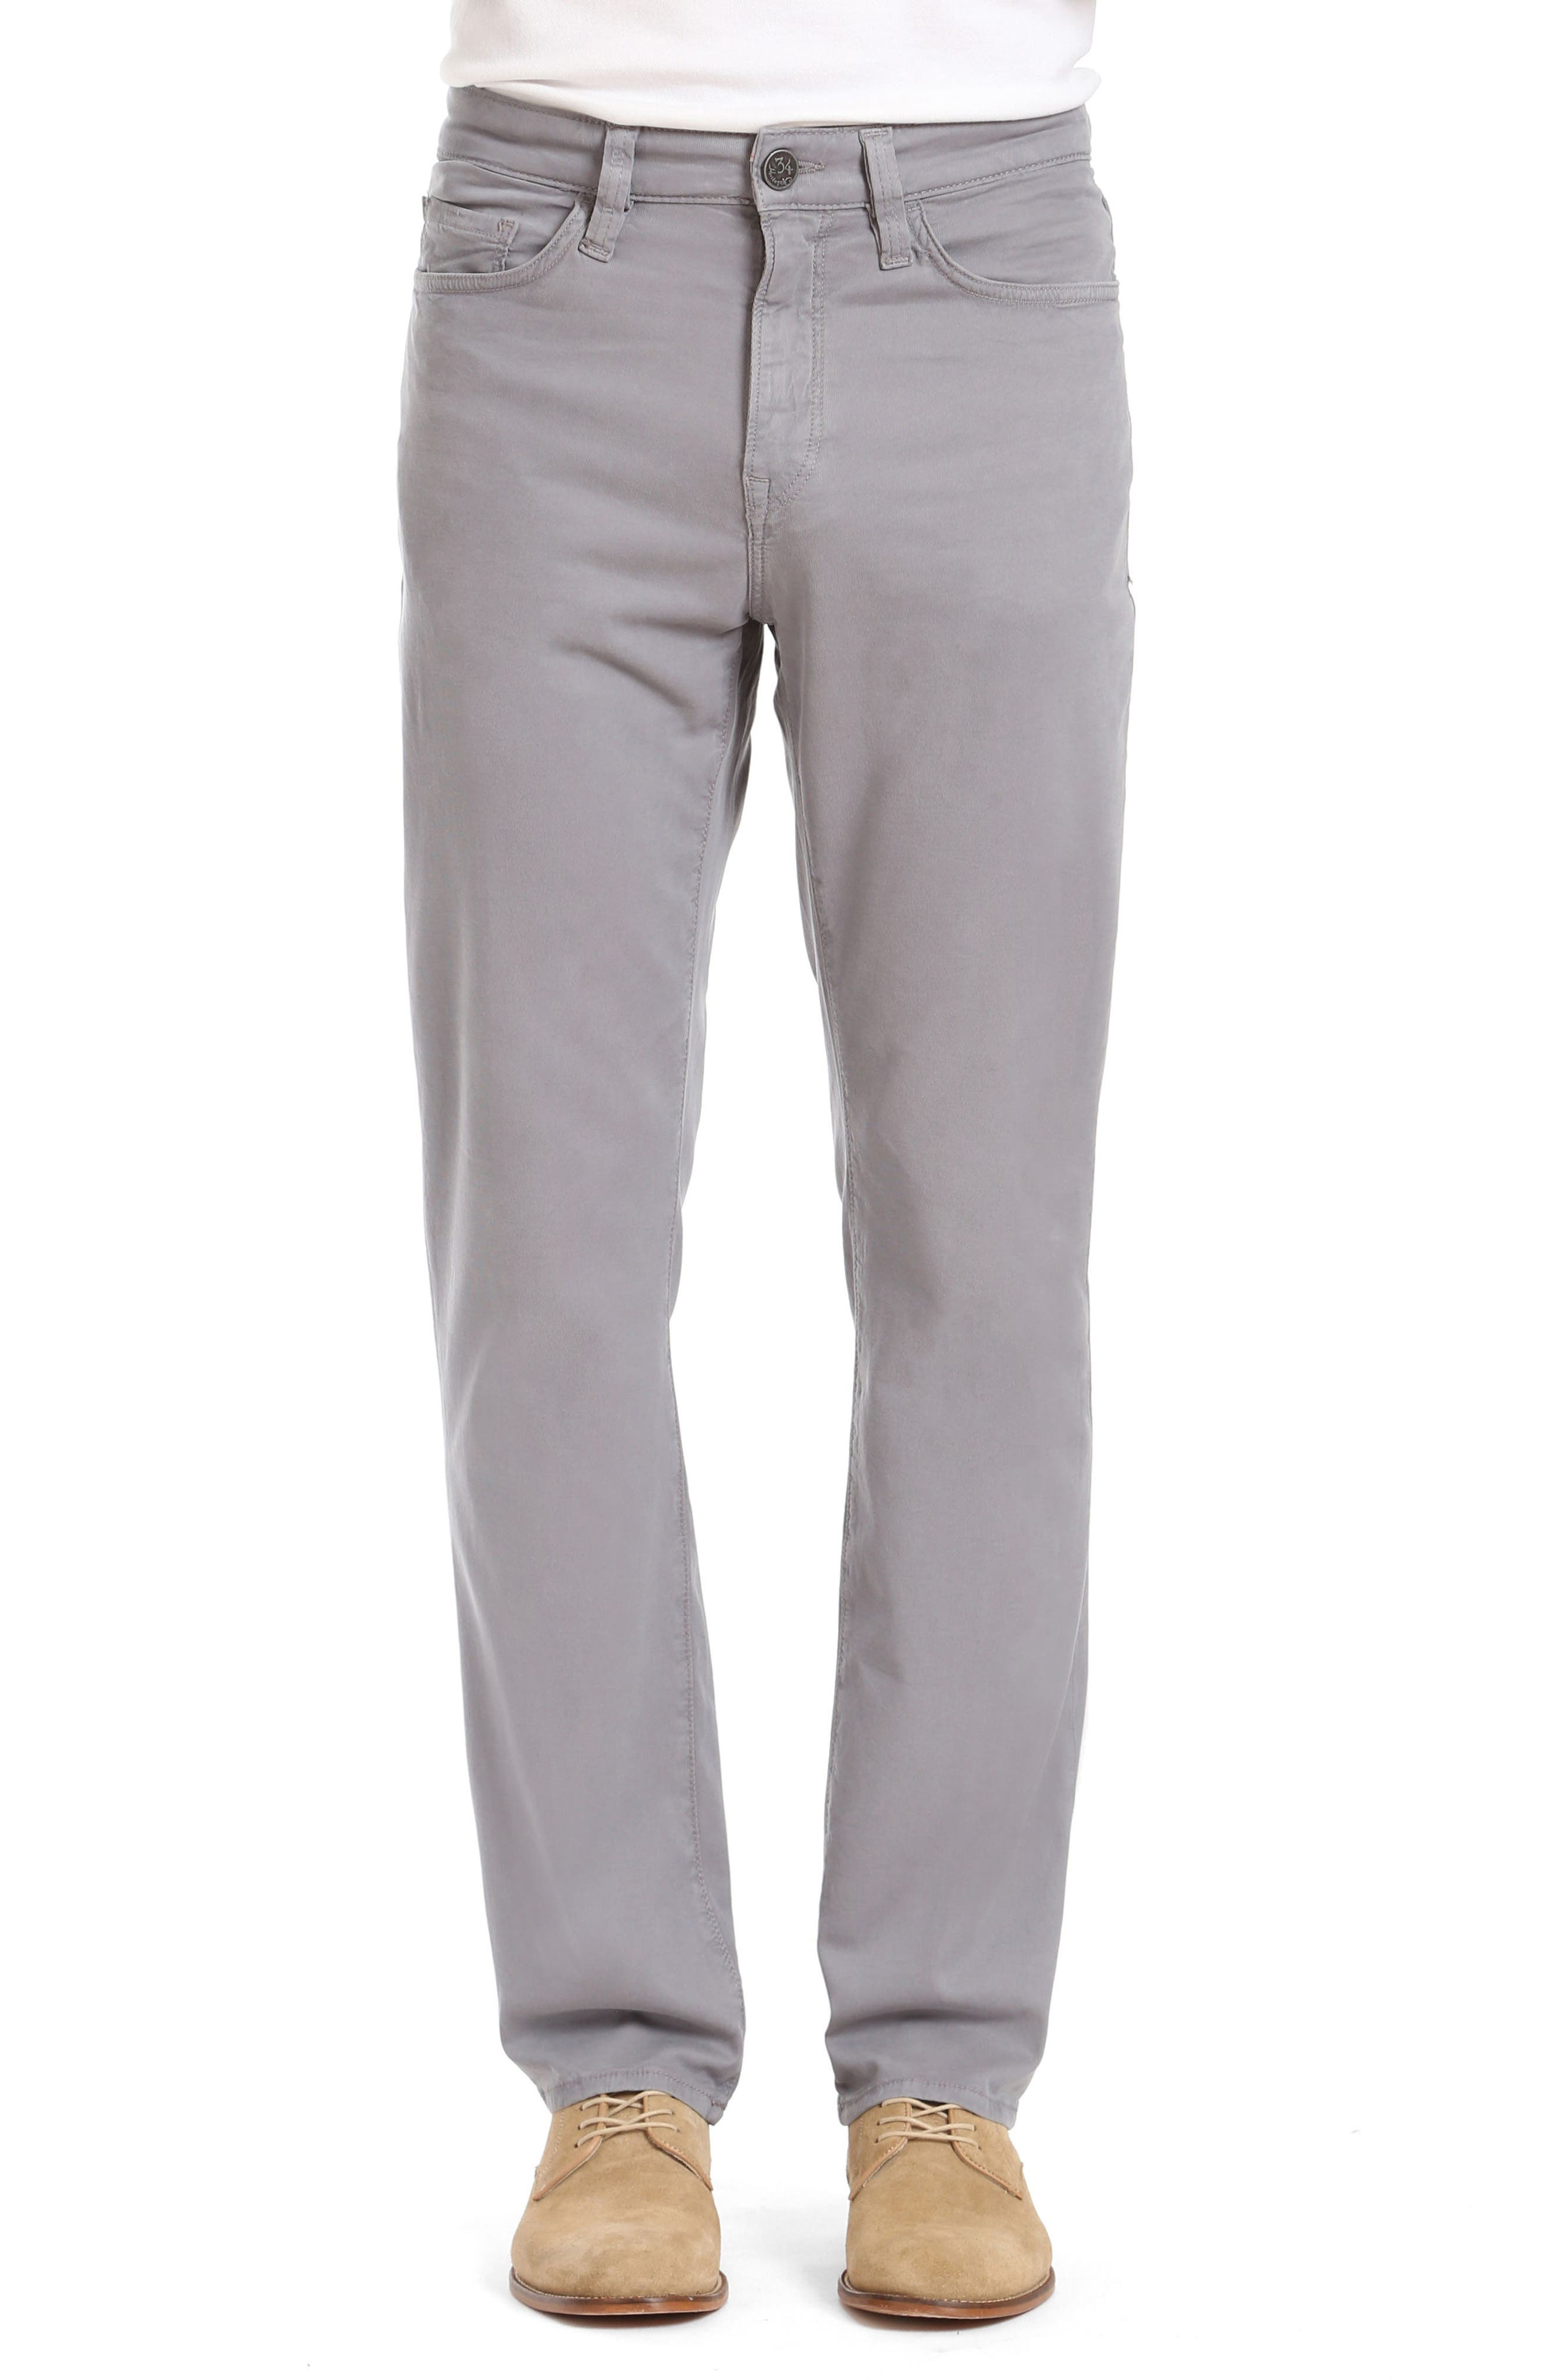 Charisma Relaxed Fit Twill Pants,                             Main thumbnail 1, color,                             050